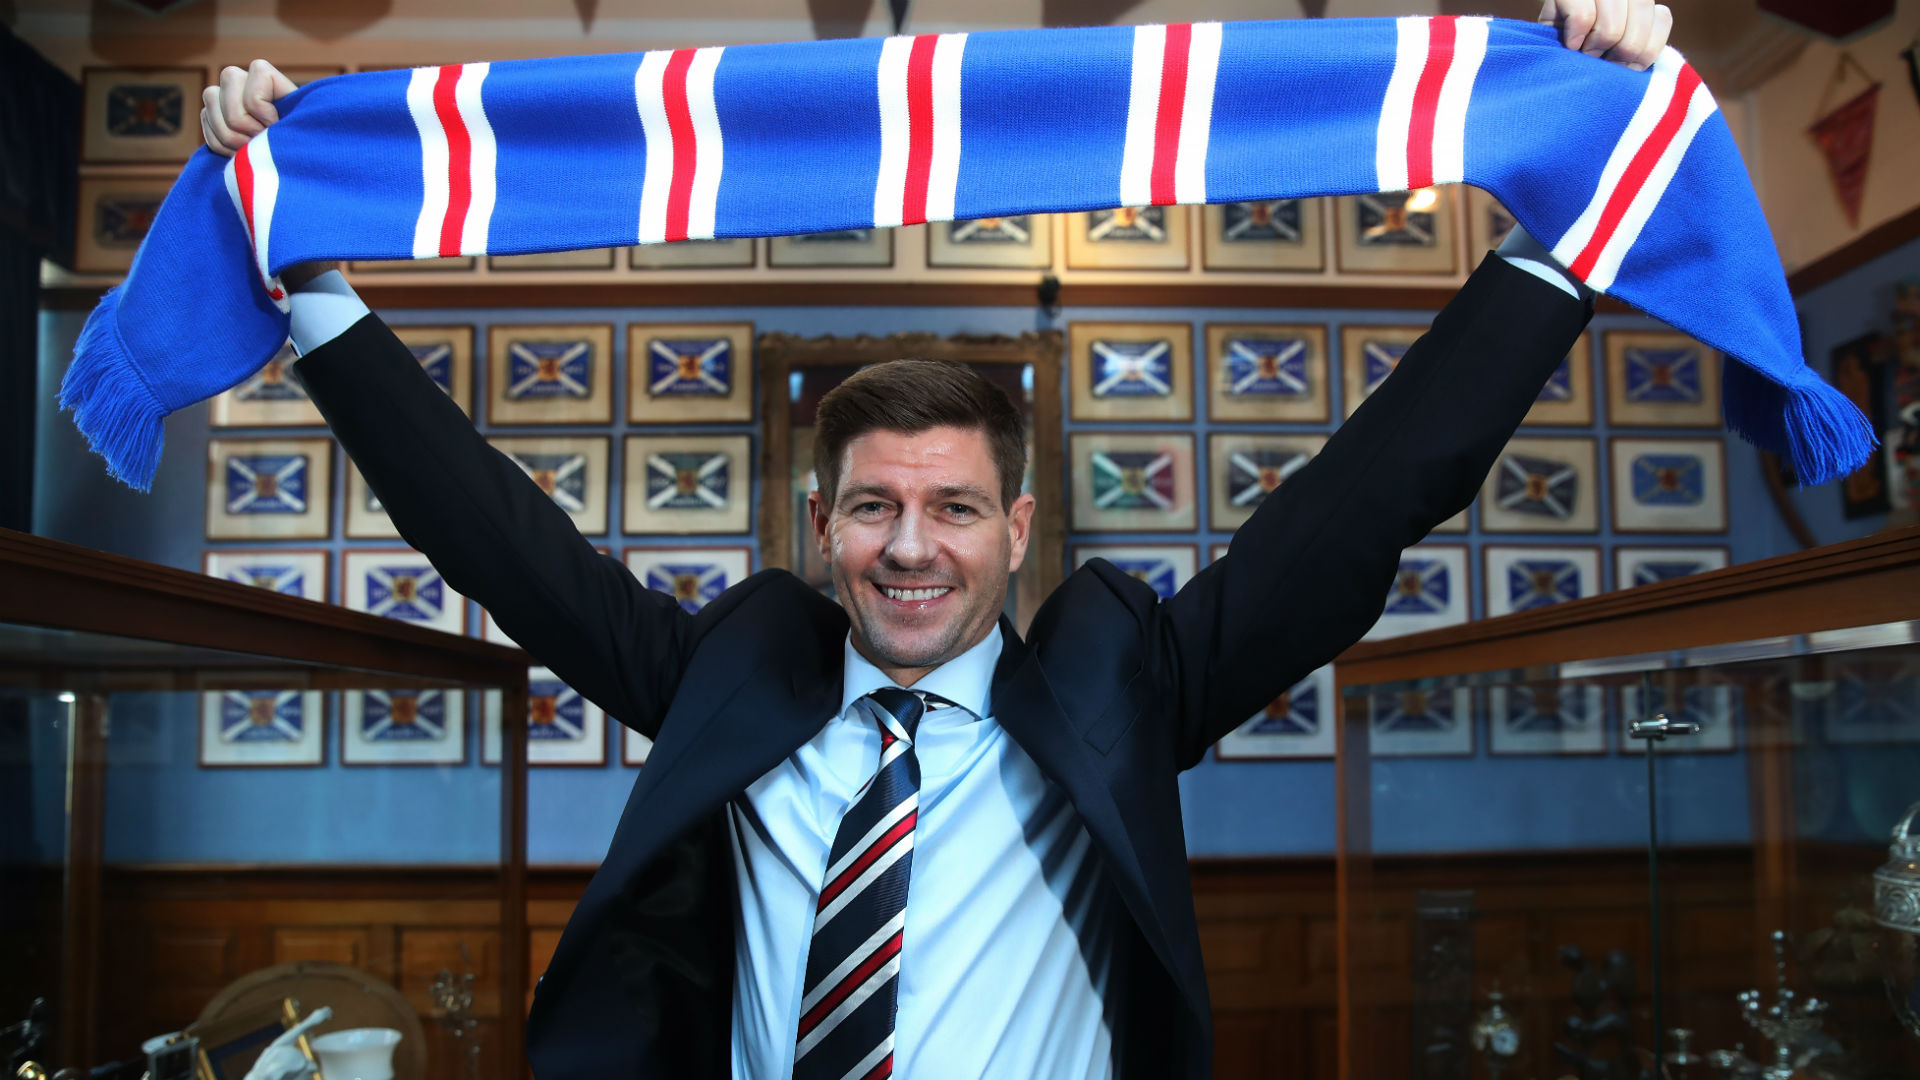 'Gerrard should be player-manager at Rangers' - Goram says Liverpool legend could 'dominate' in Scotland